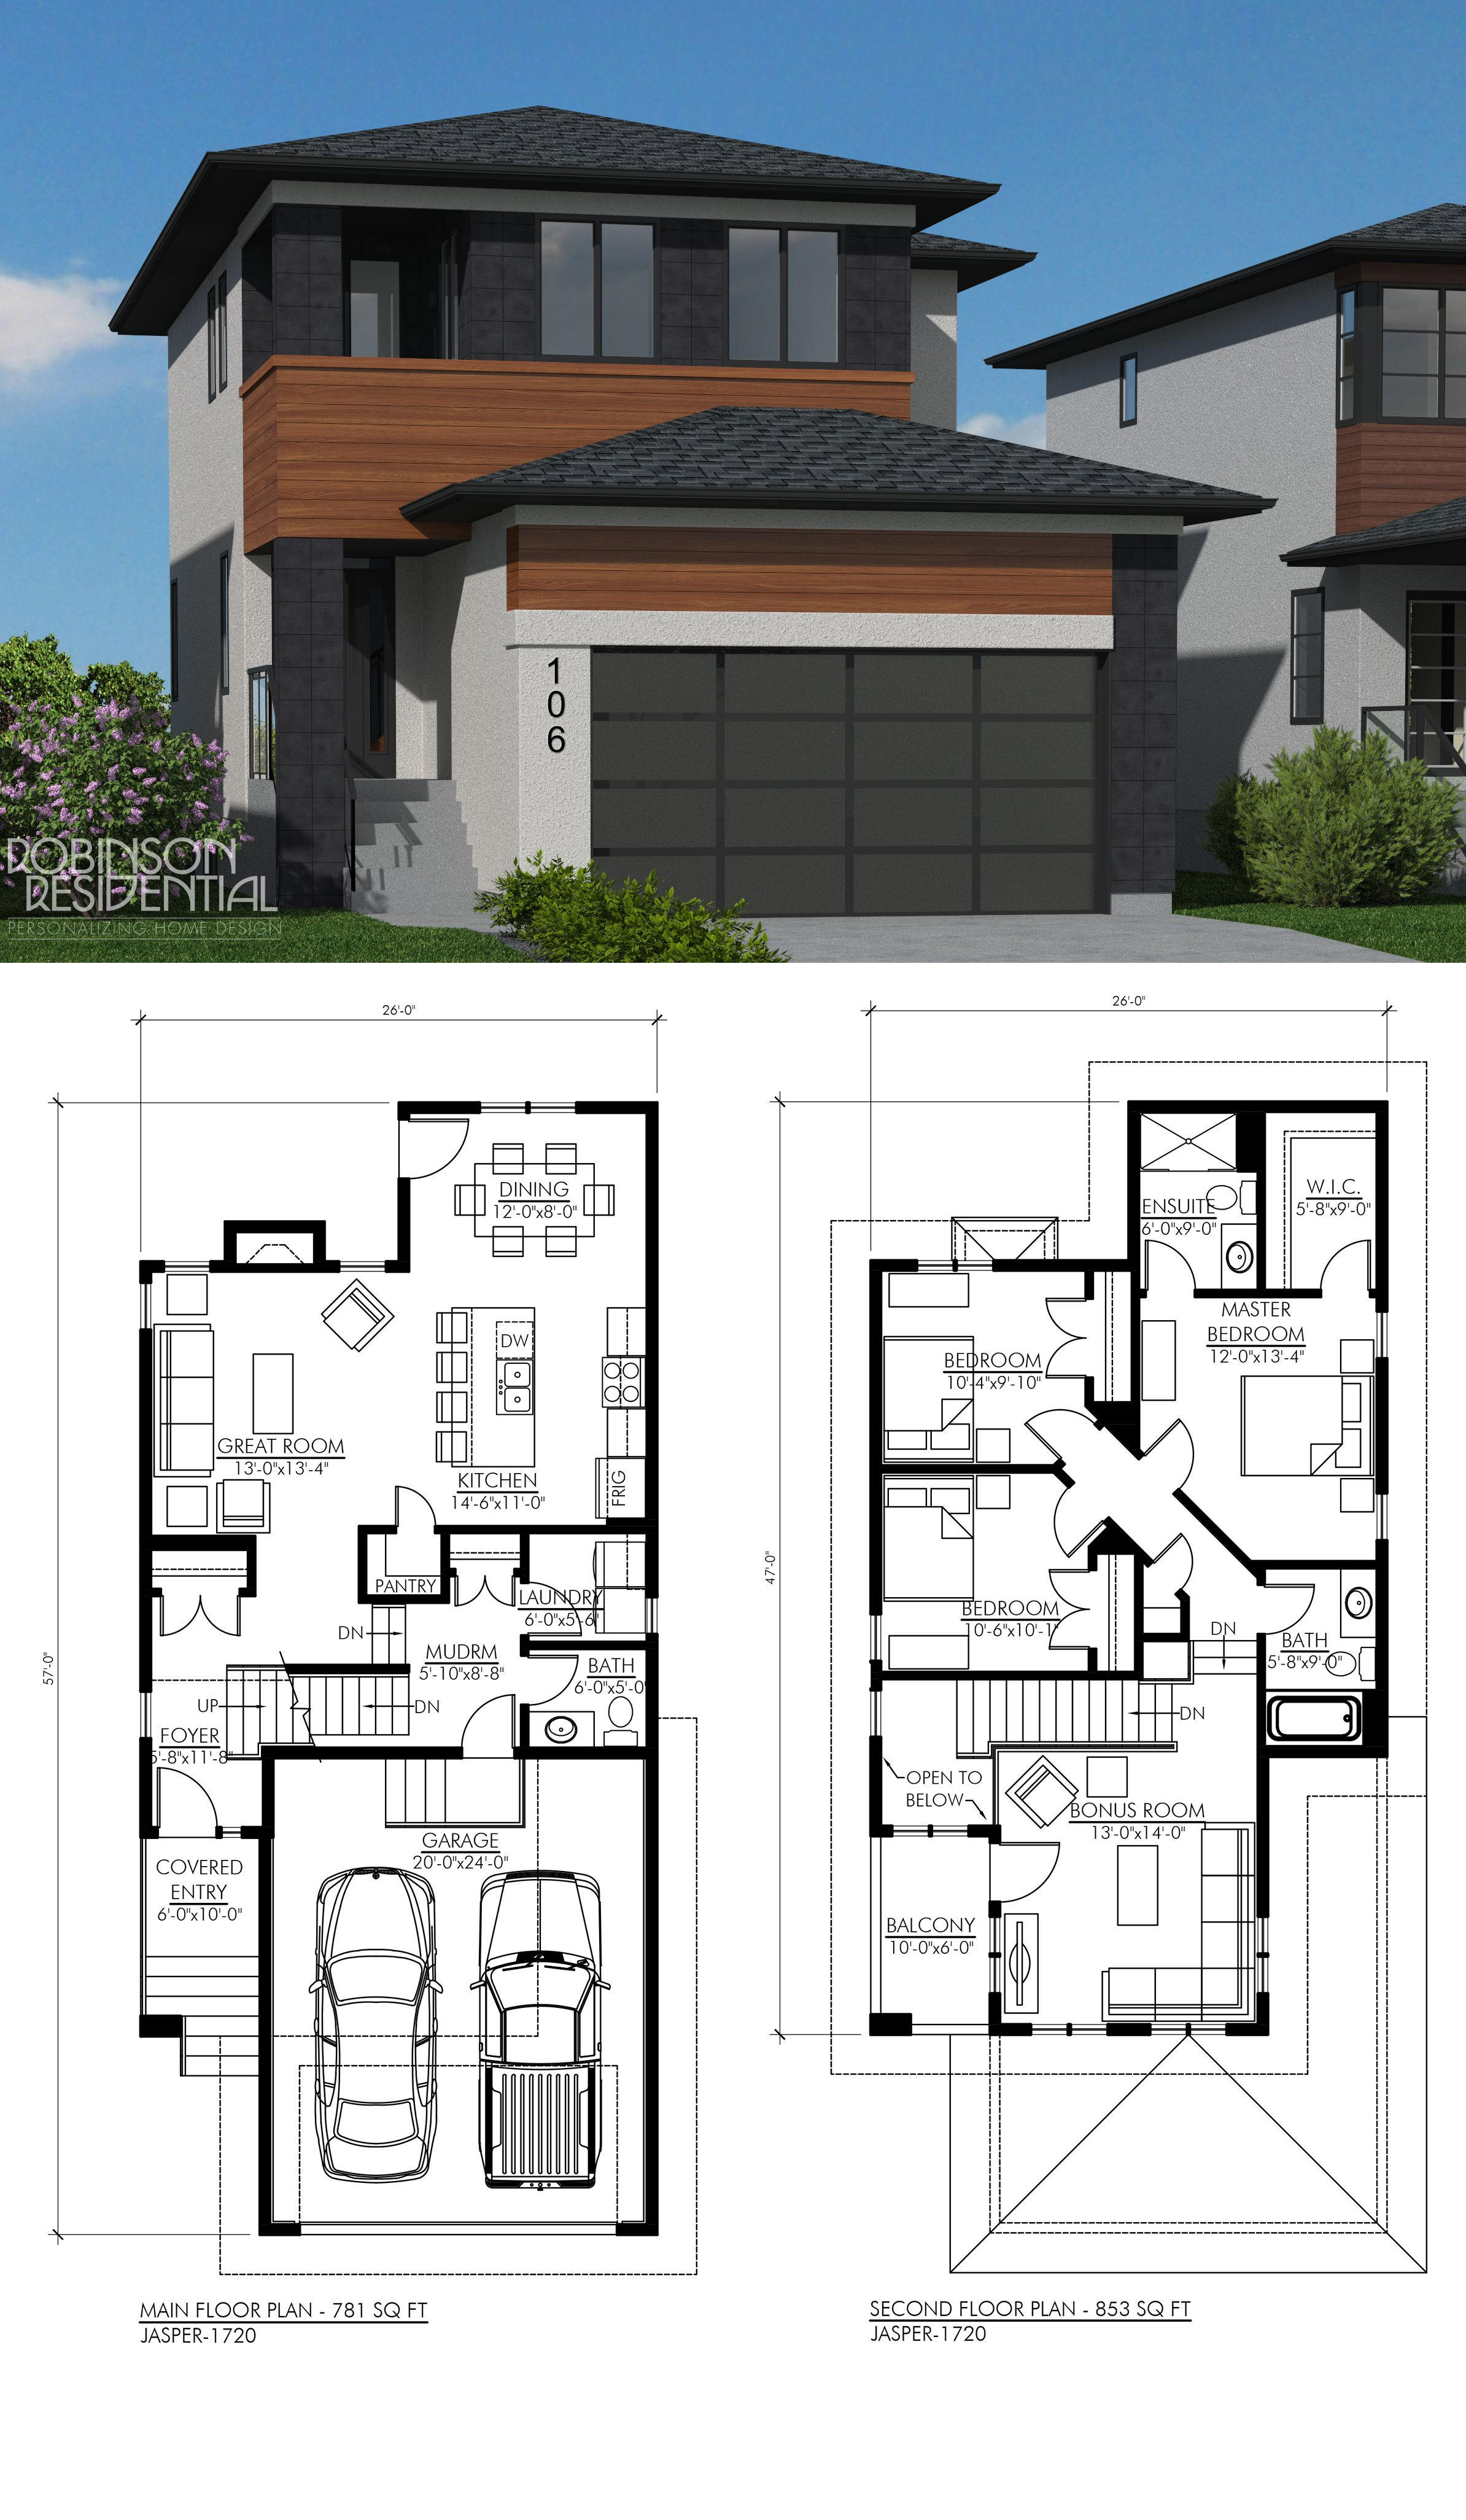 Small House Plans with Garage Luxury Contemporary Jasper 1720